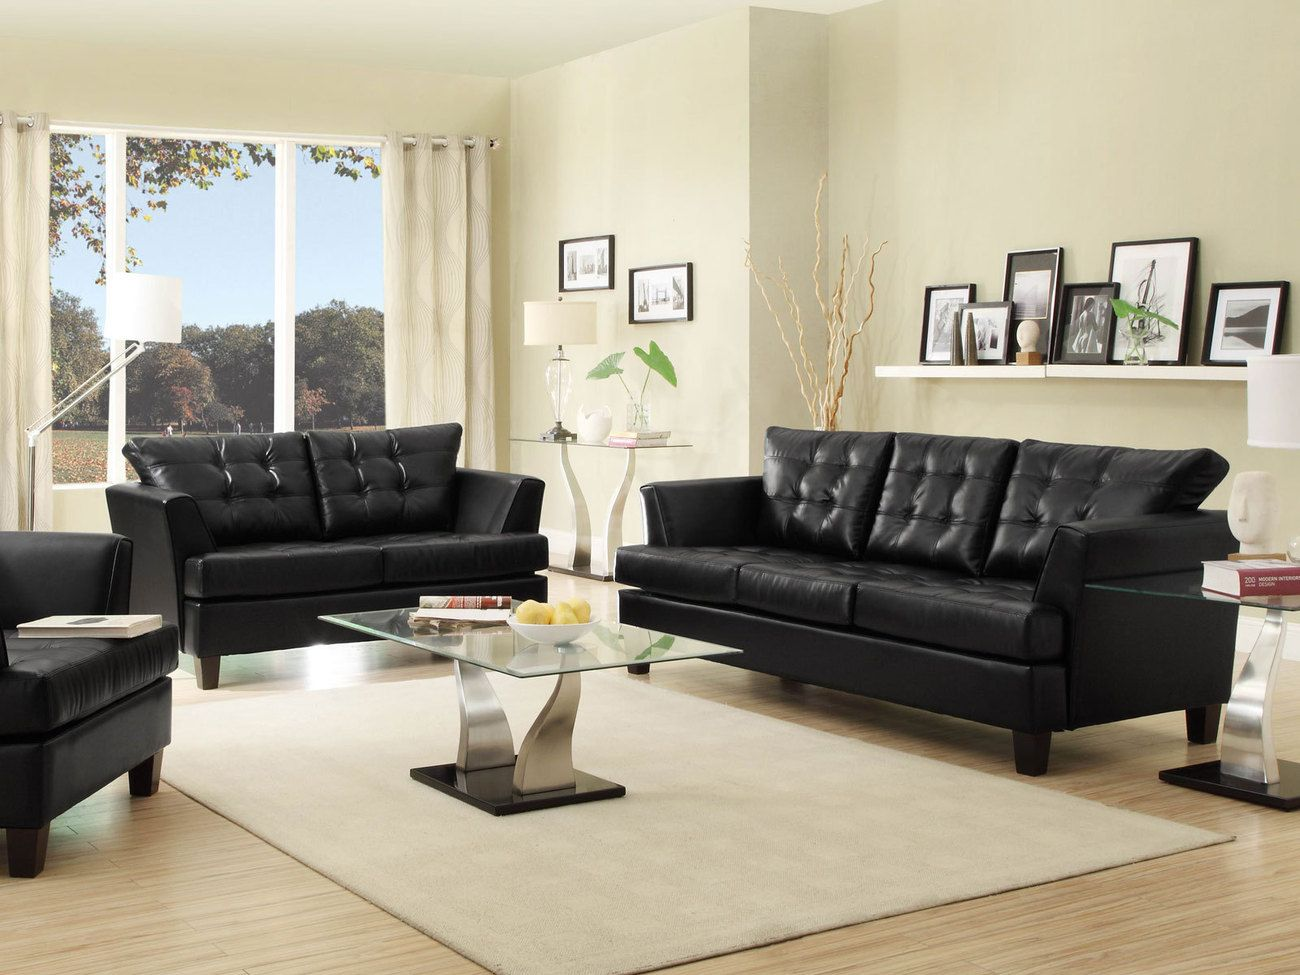 Leather Furniture For Living Room Iris Modern Black Faux Leather Sofa Couch Loveseat Set Living